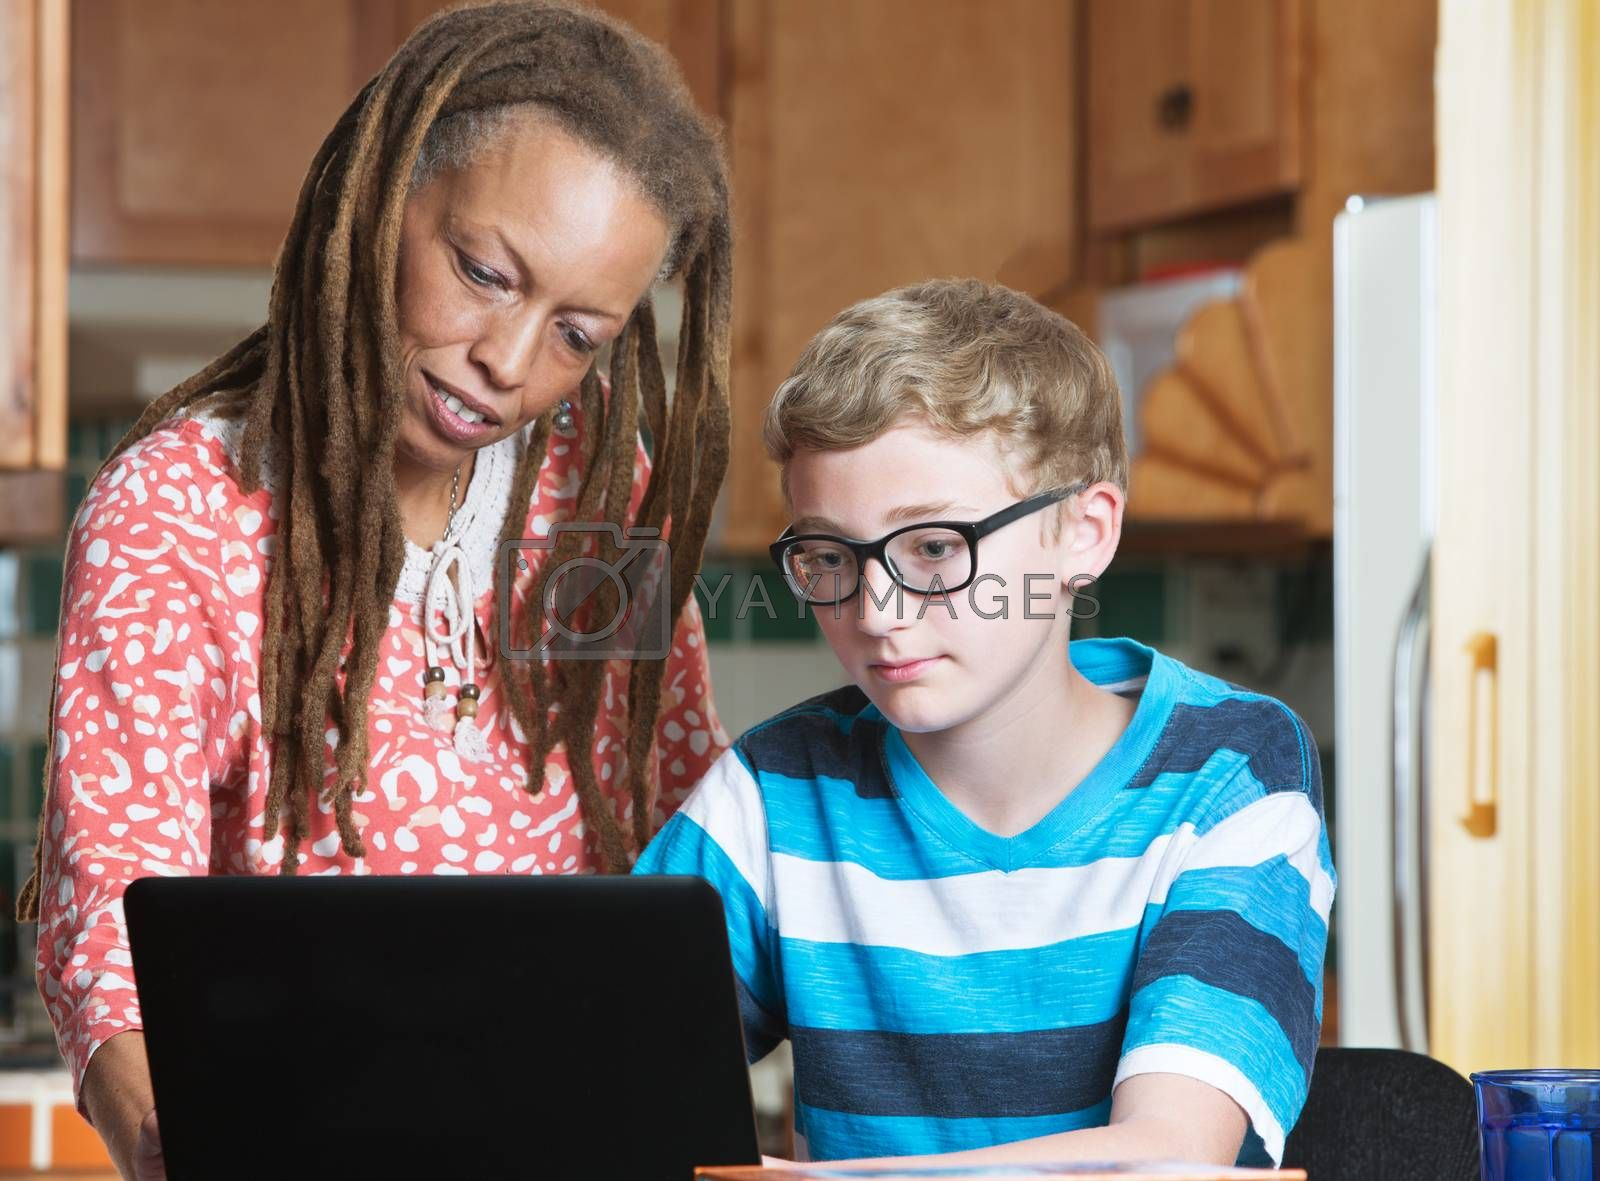 Foster parent helping child in eyeglasses working on laptop